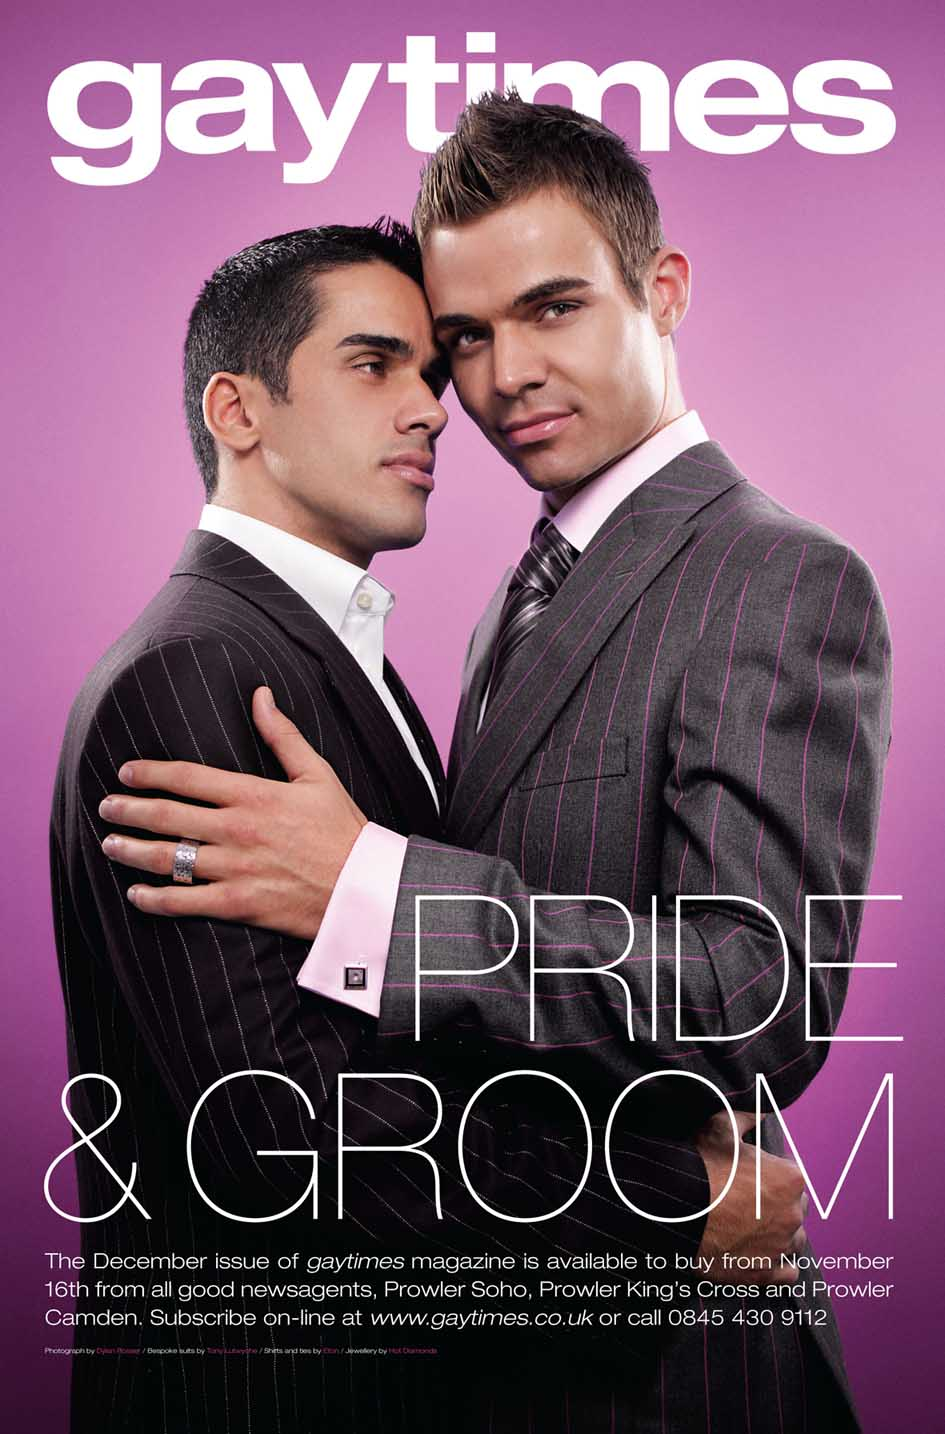 December 2005 cover for Gay Times magazine (UK)This image was a poster in  London Tube stations and the cover of the December 2005 Gay Times (UK) mens  ...